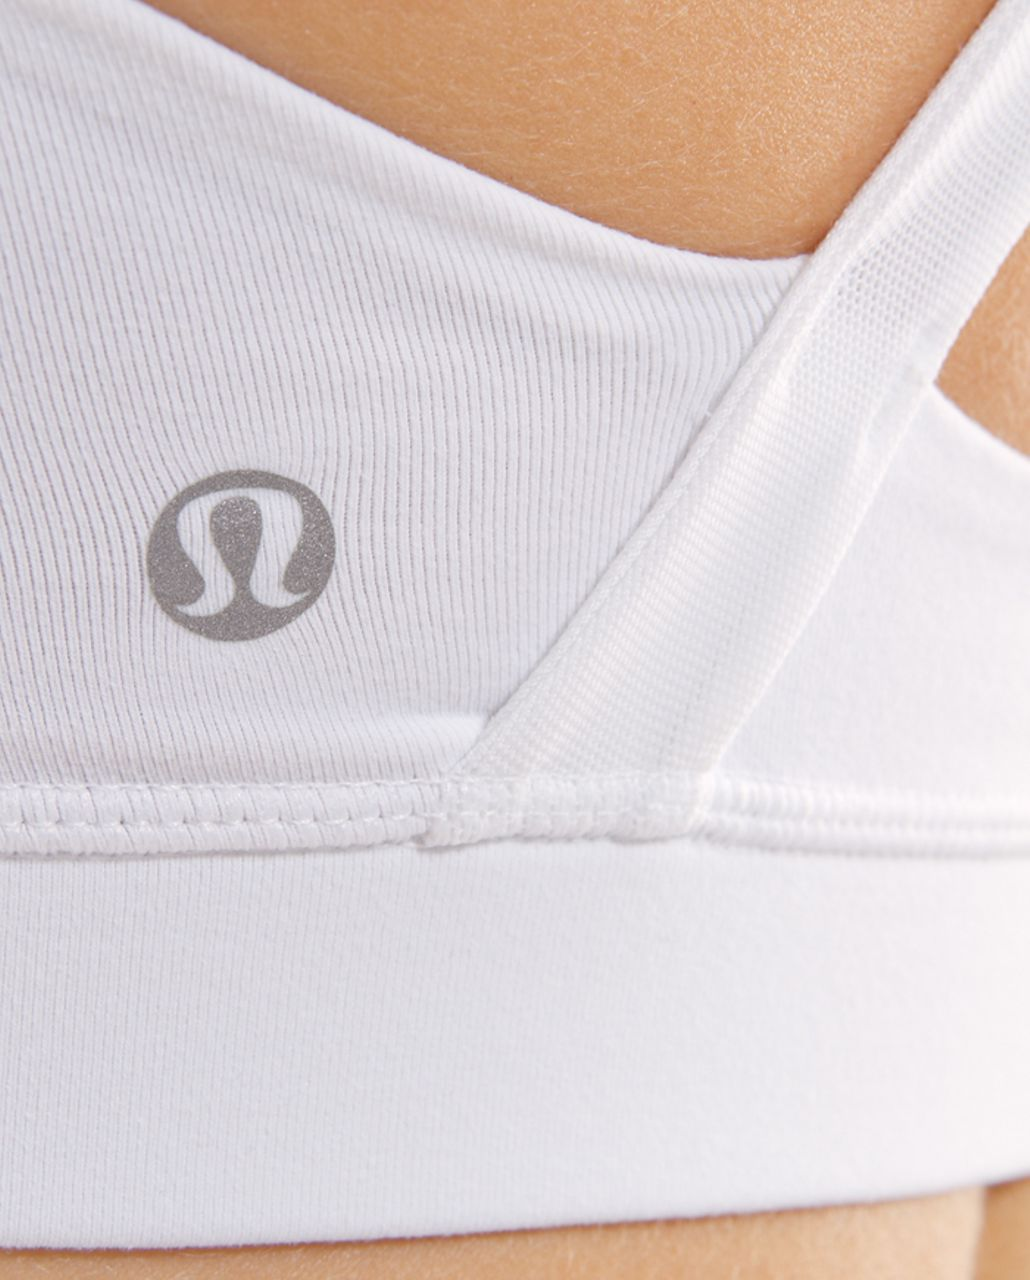 Lululemon 50 Rep Bra (First Release) - White